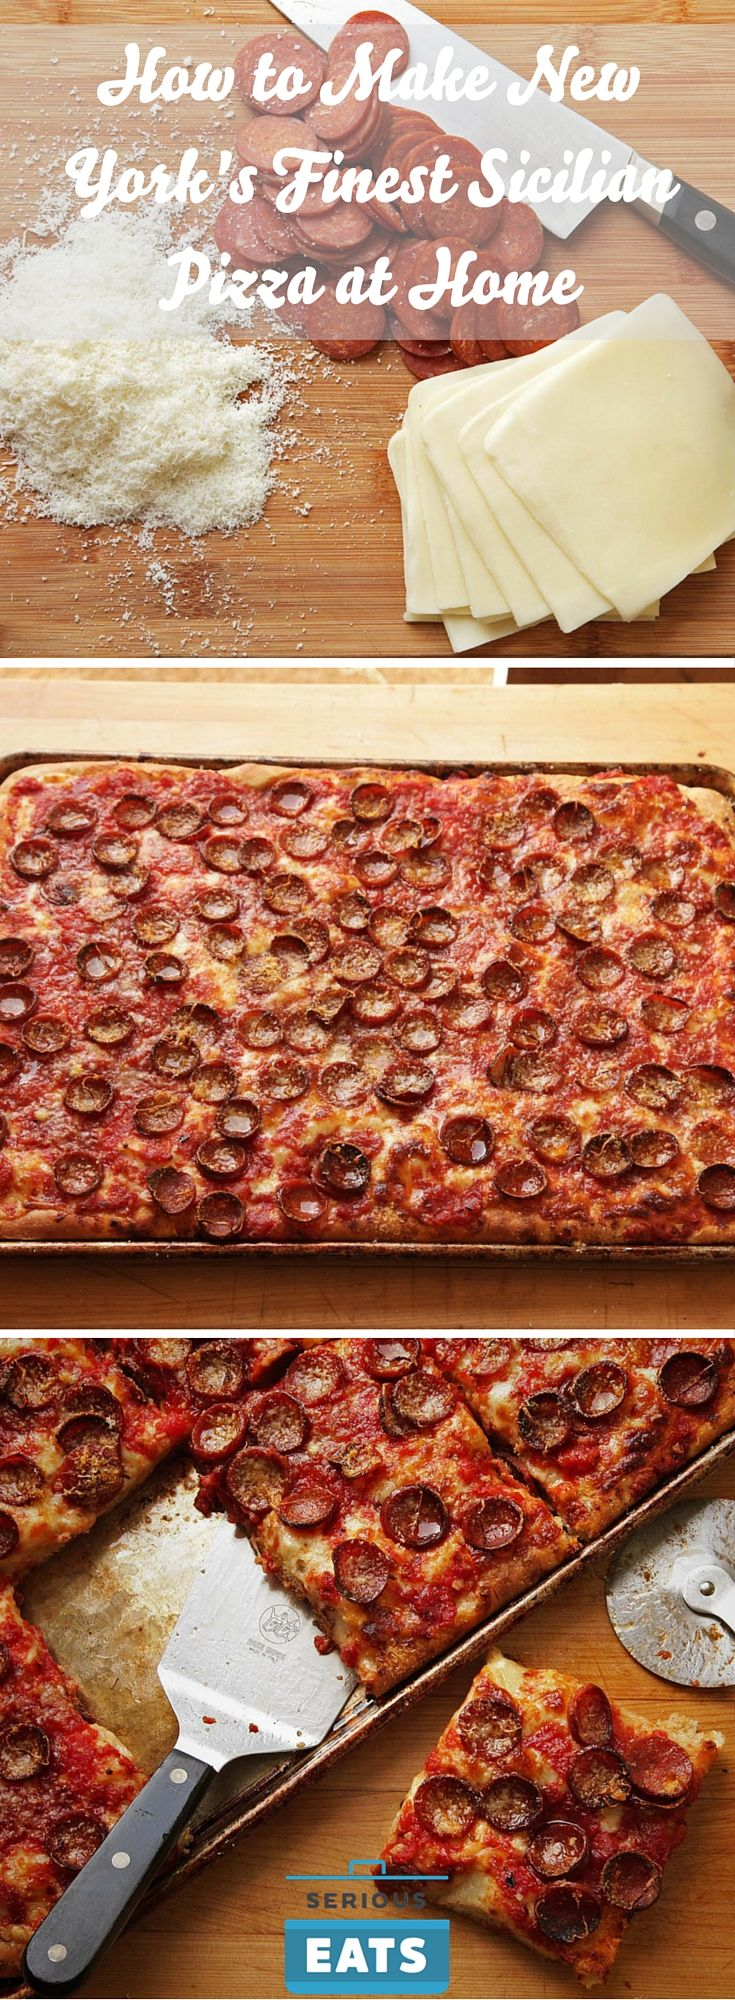 A spicy, cheesy, well-risen square pizza with crispy chalices of pepperoni.